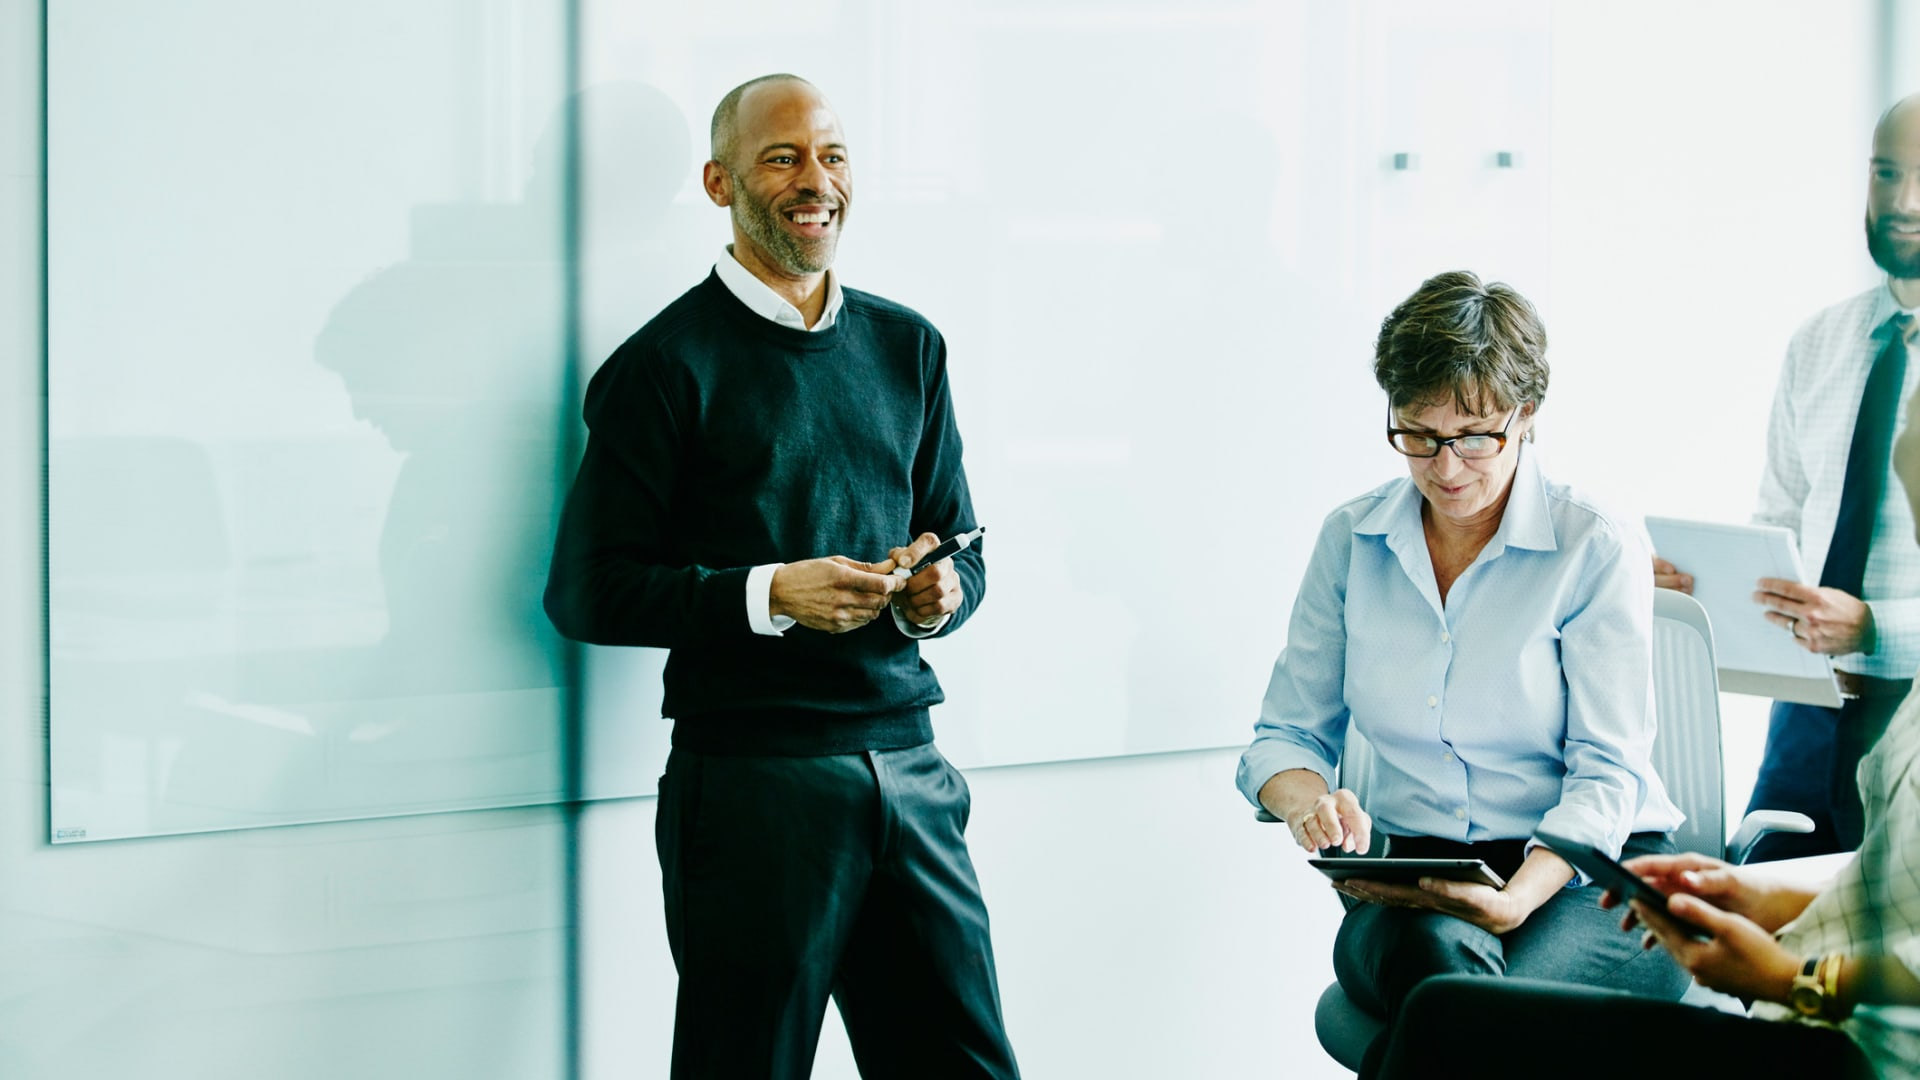 6 Ways to Strengthen Your Leadership in 2021